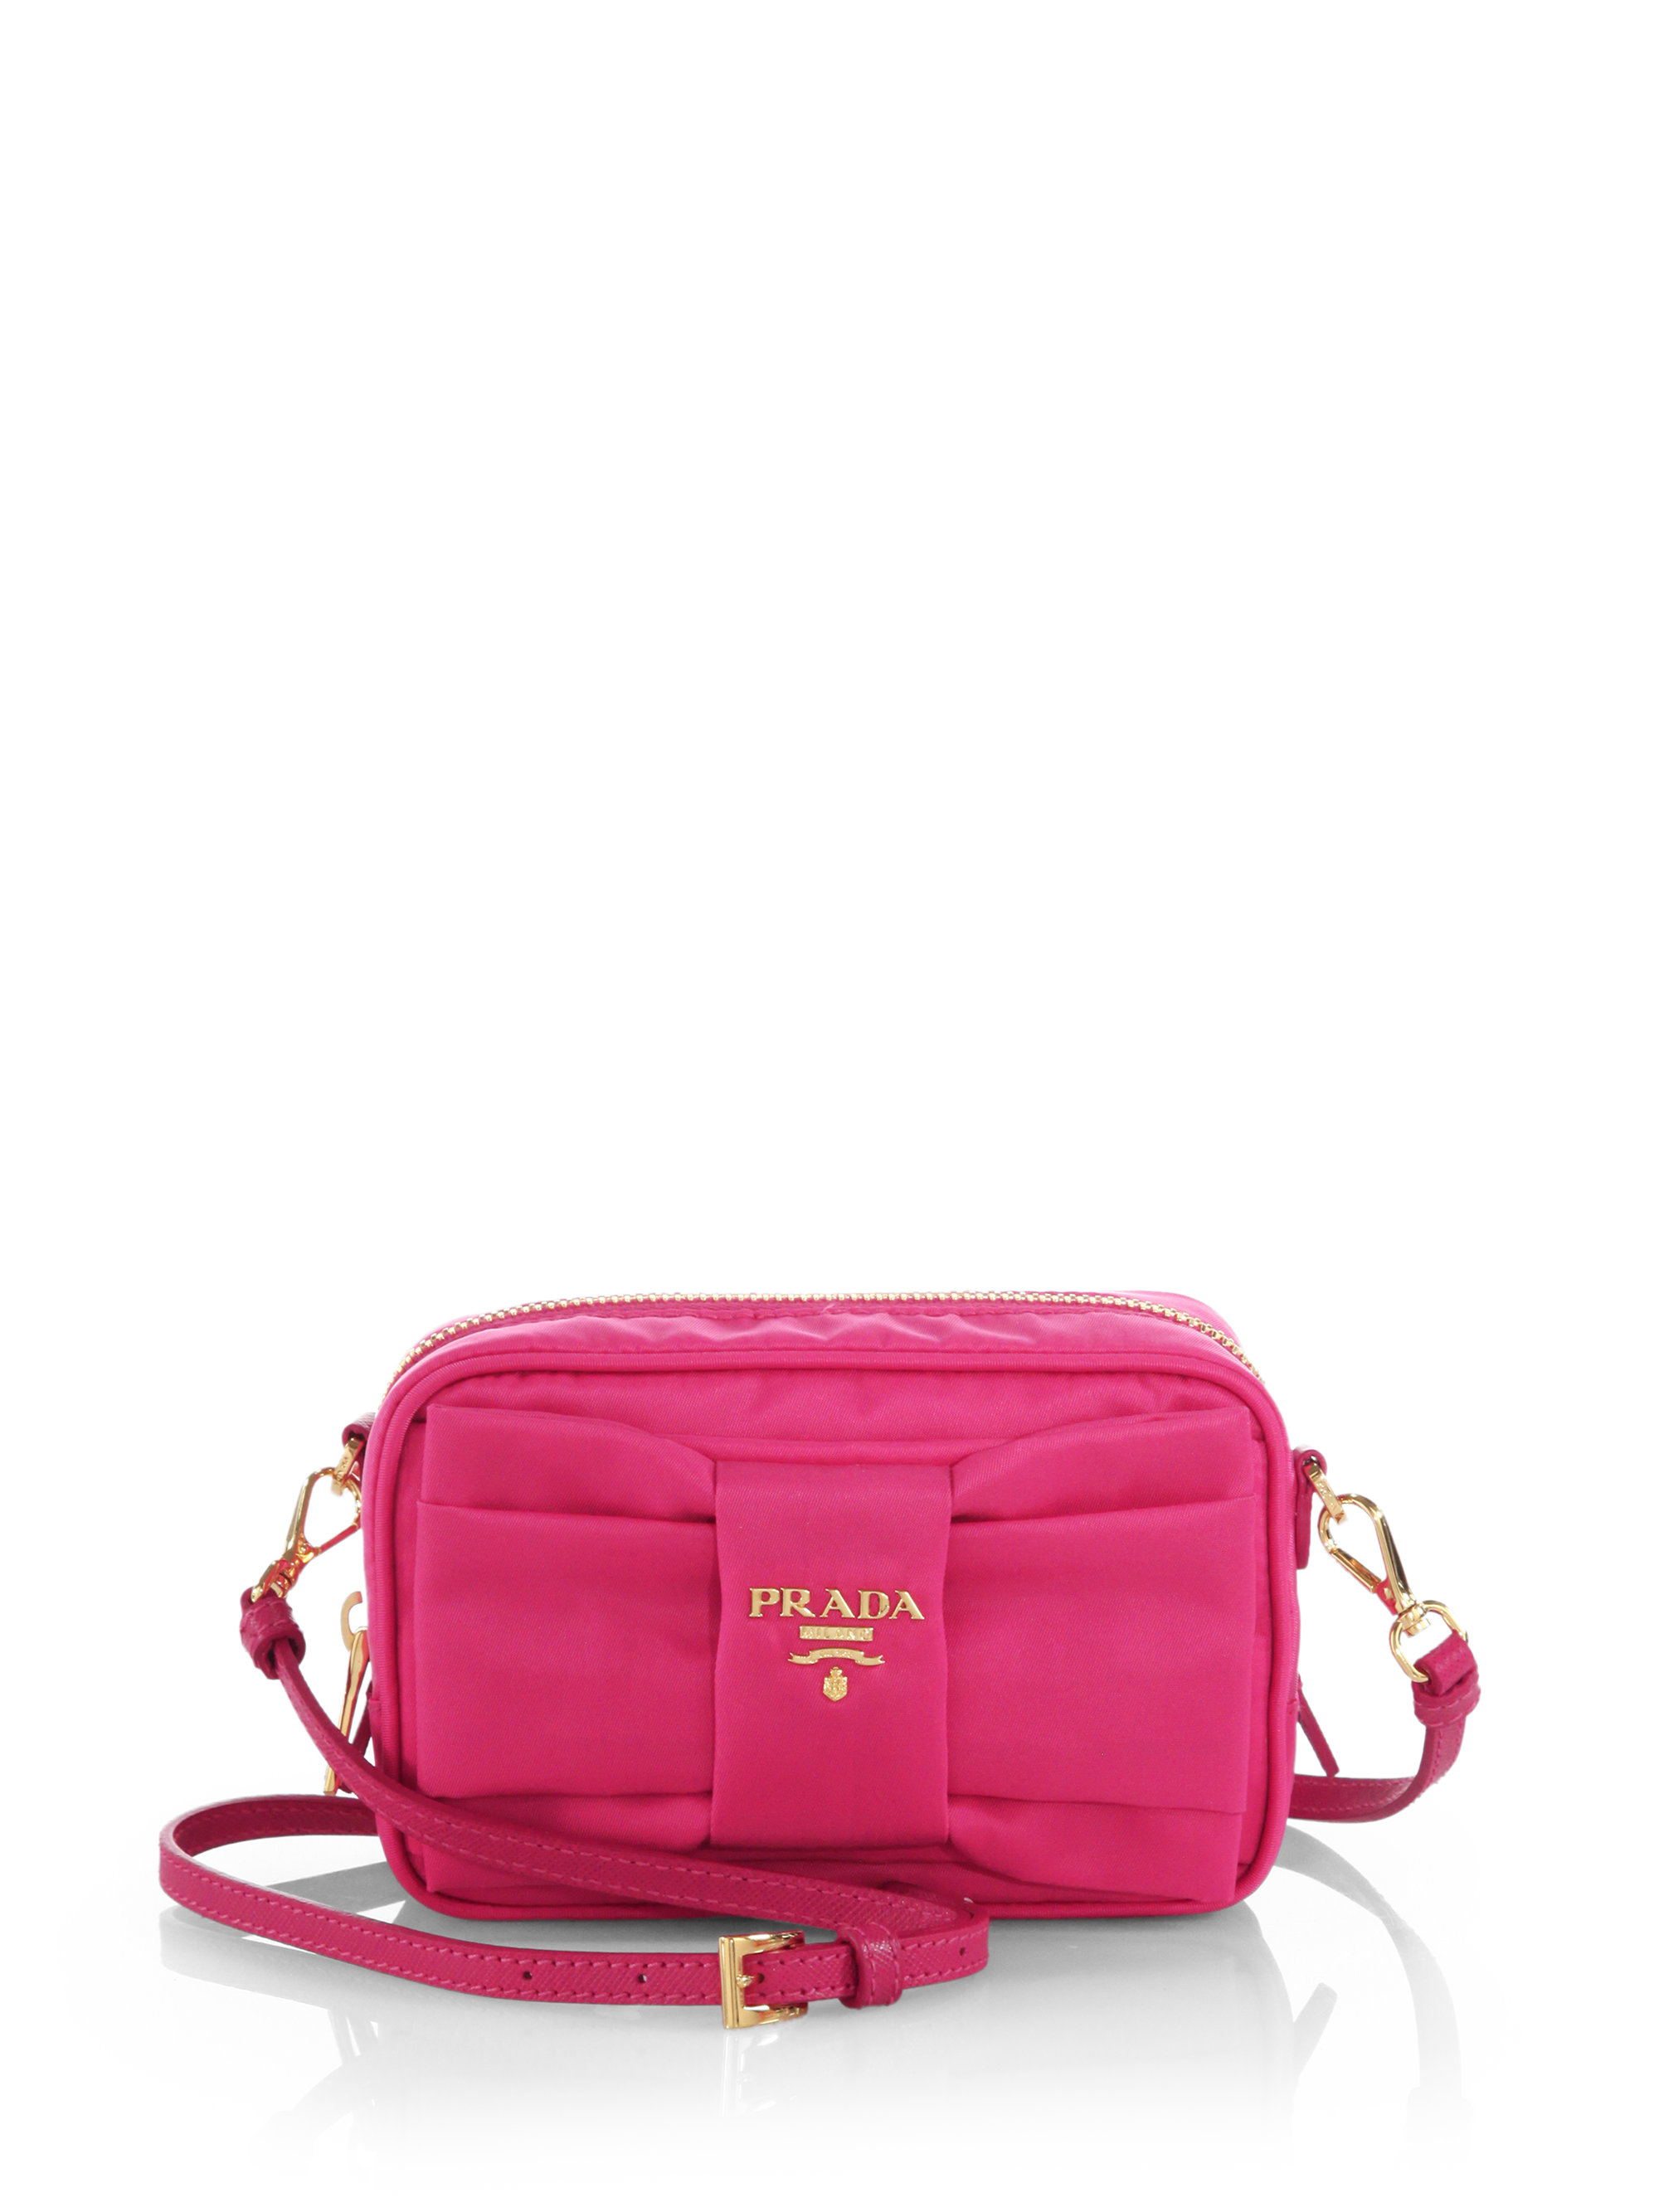 955eaabbf9c8 Lyst - Prada Tessuto Nylon Bow Crossbody Bag in Purple